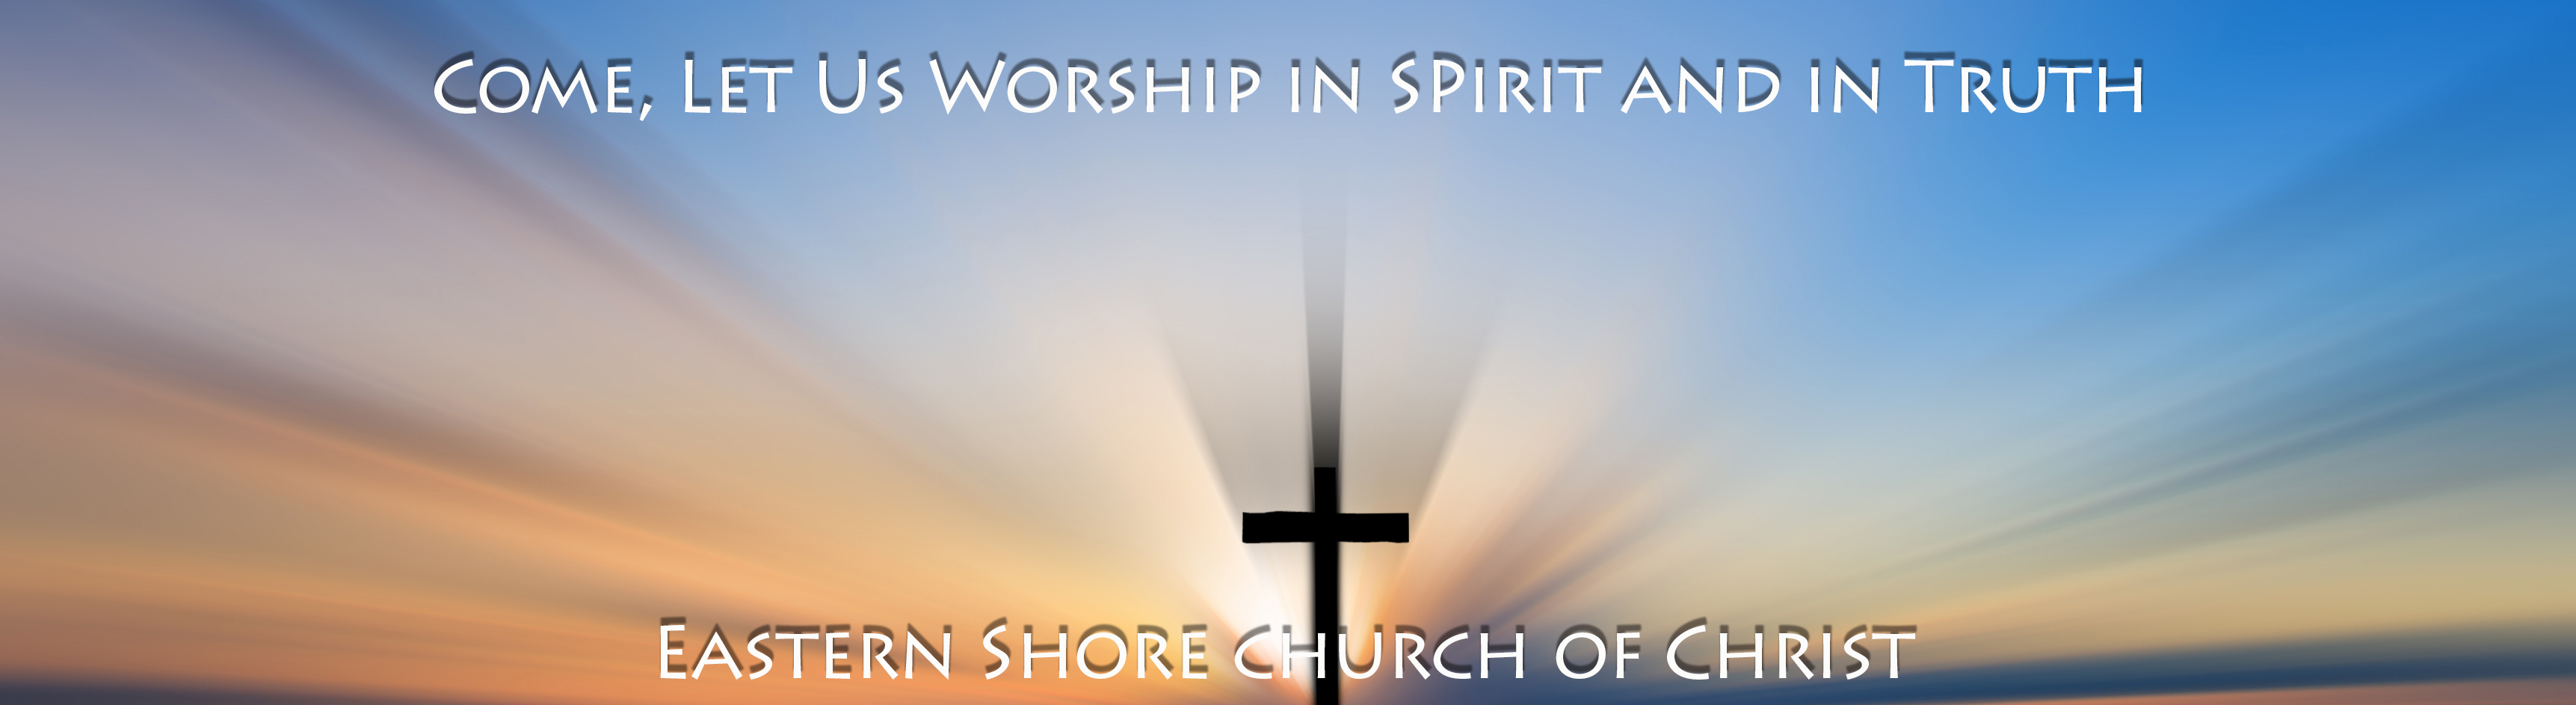 Eastern Shore Church of Christ An Invitation